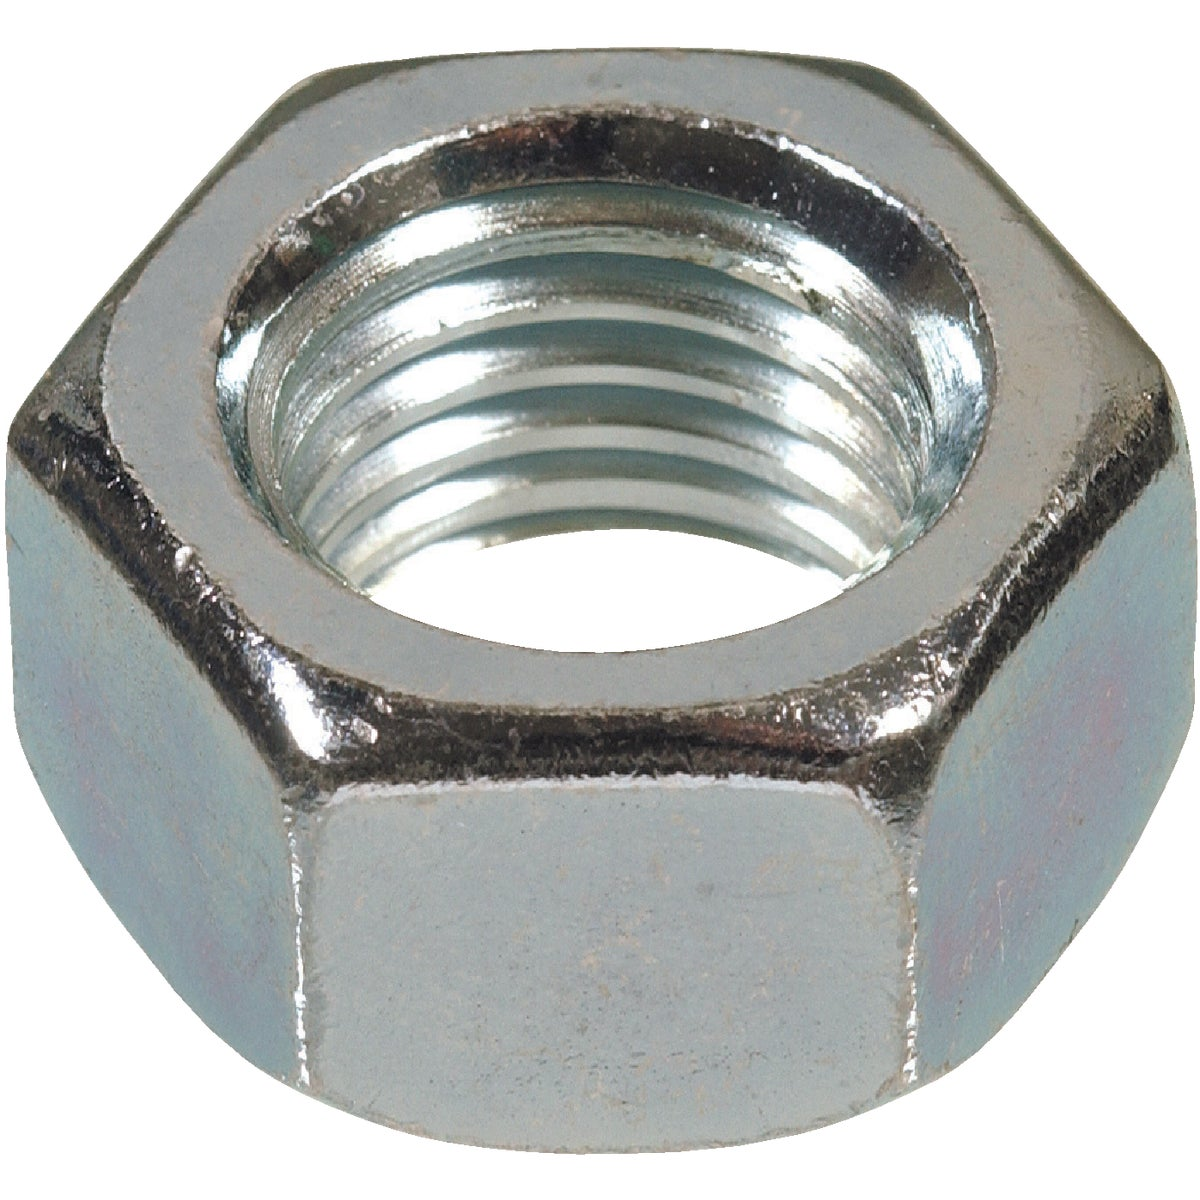 5/8-11 C THREAD HEX NUT - 150021 by Hillman Fastener